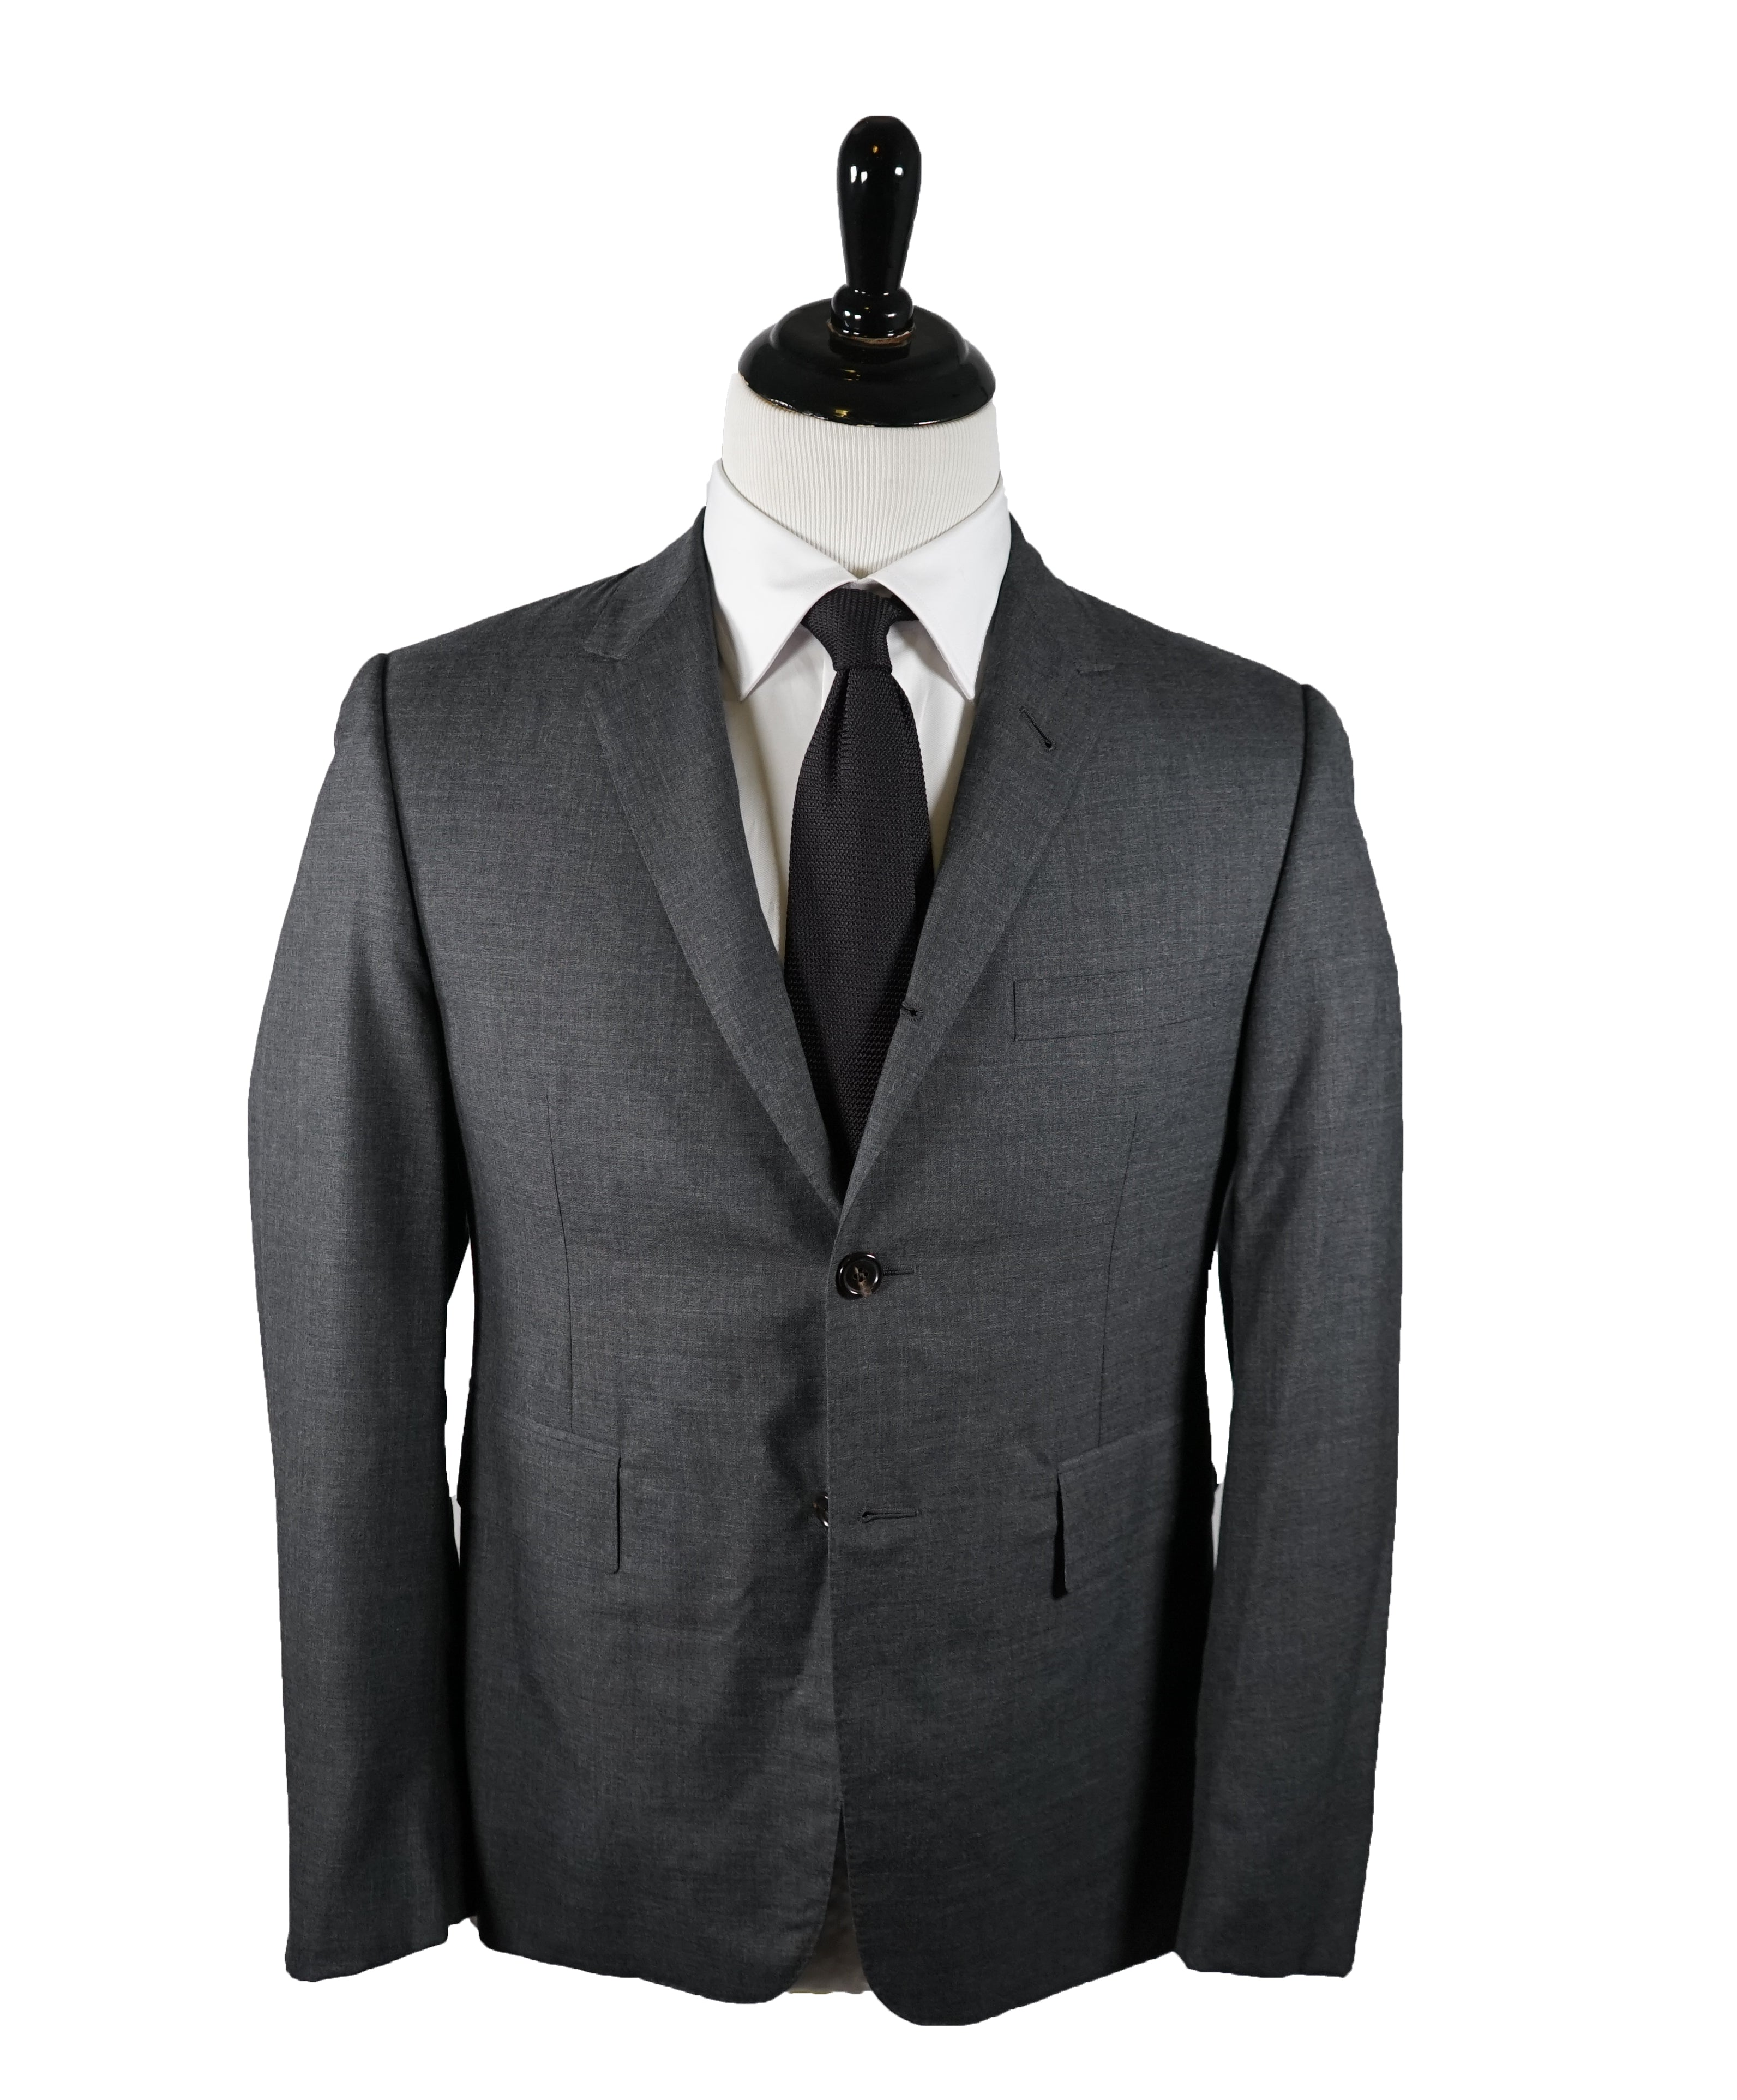 THOM BROWNE - Gray Premium Suit With Iconic Logo Detailing - SZ 2